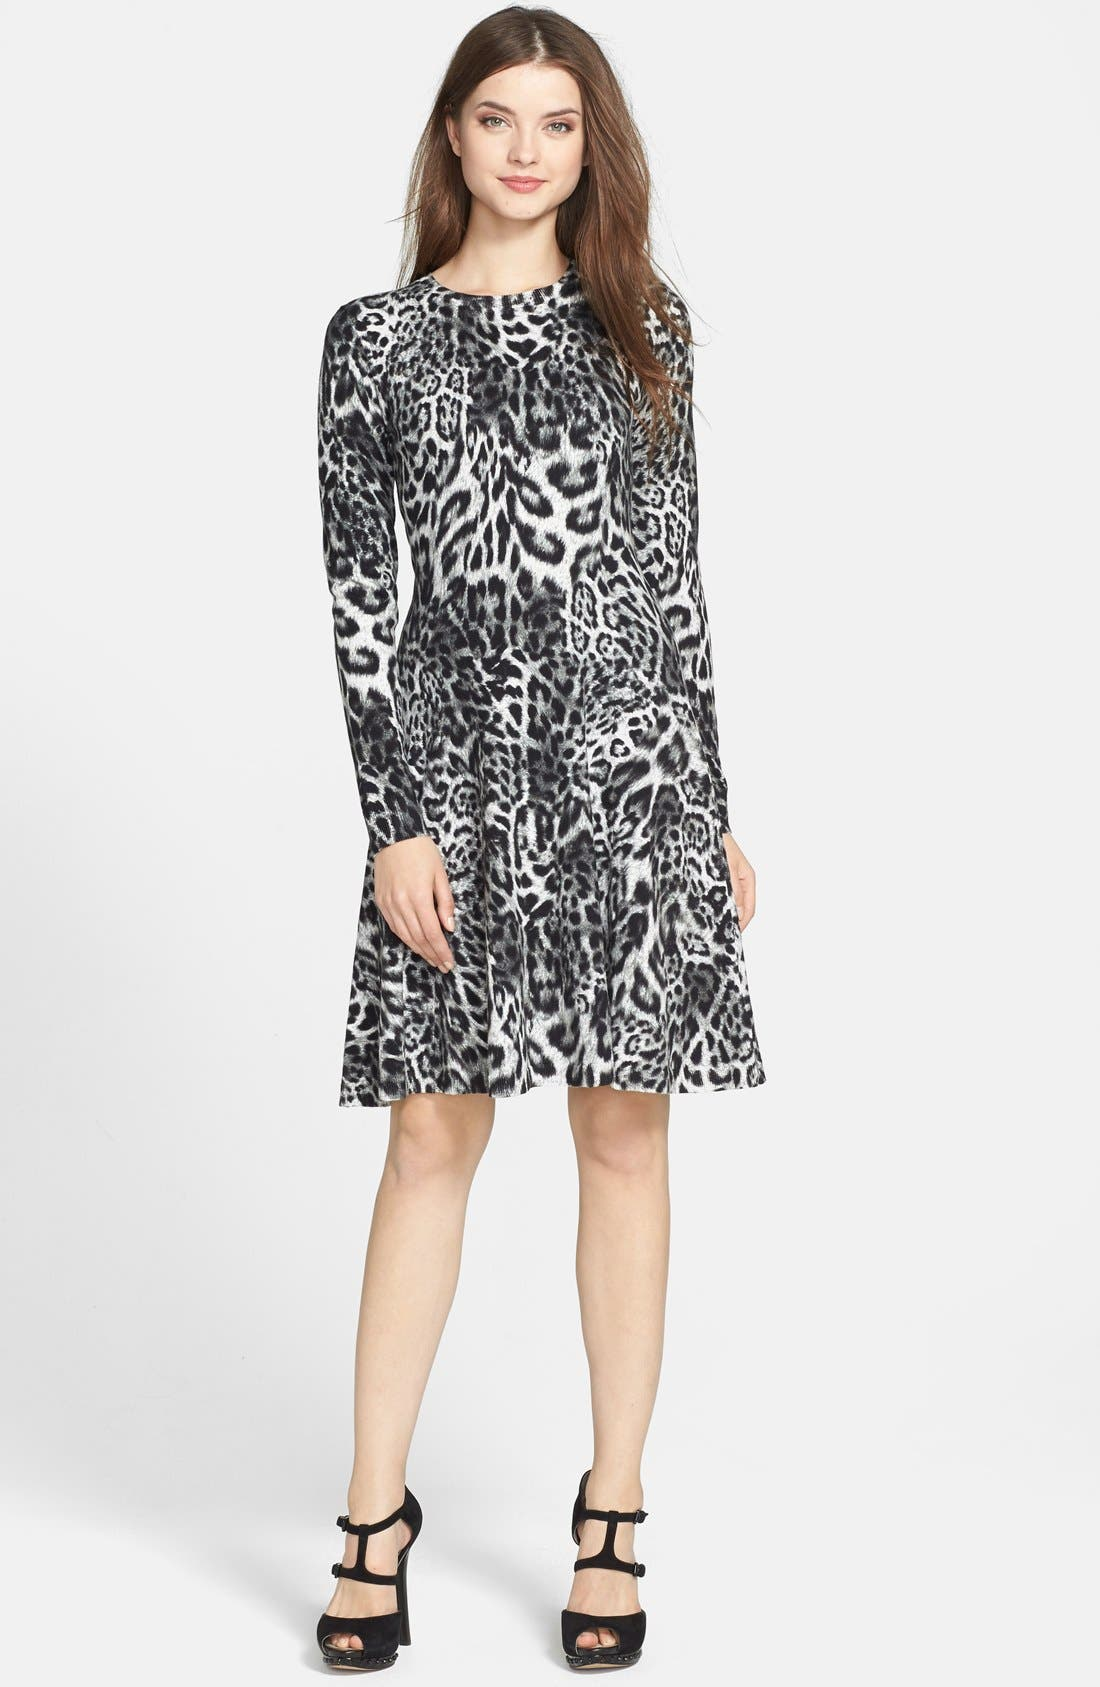 MICHAEL MICHAEL KORS, 'Fremont' Leopard Print Fit & Flare Dress, Main thumbnail 1, color, 001